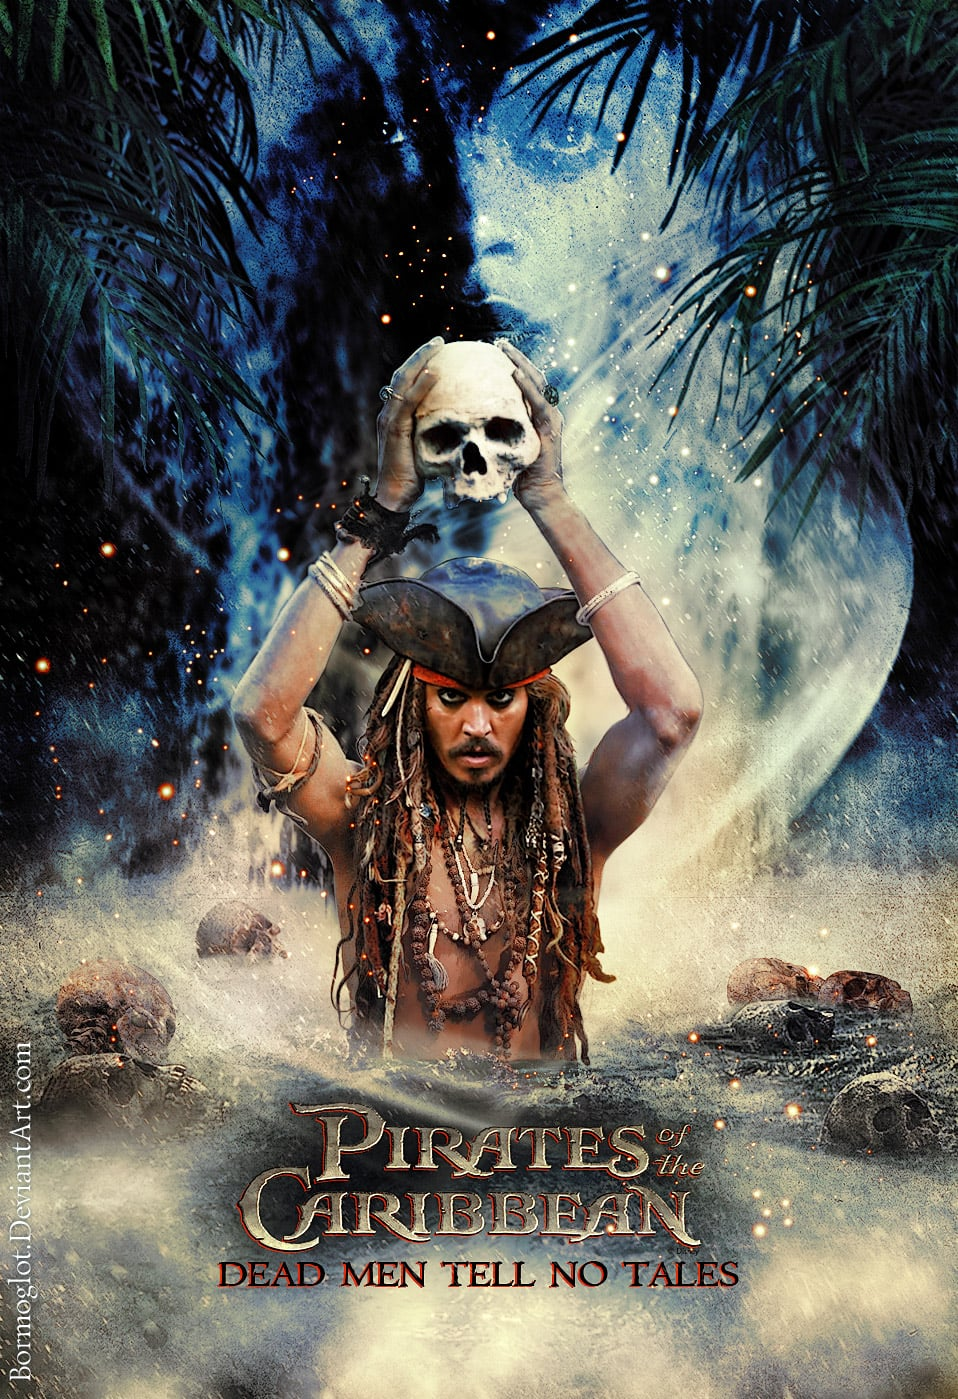 Pirates-of-the-caribbean-5_2.jpg